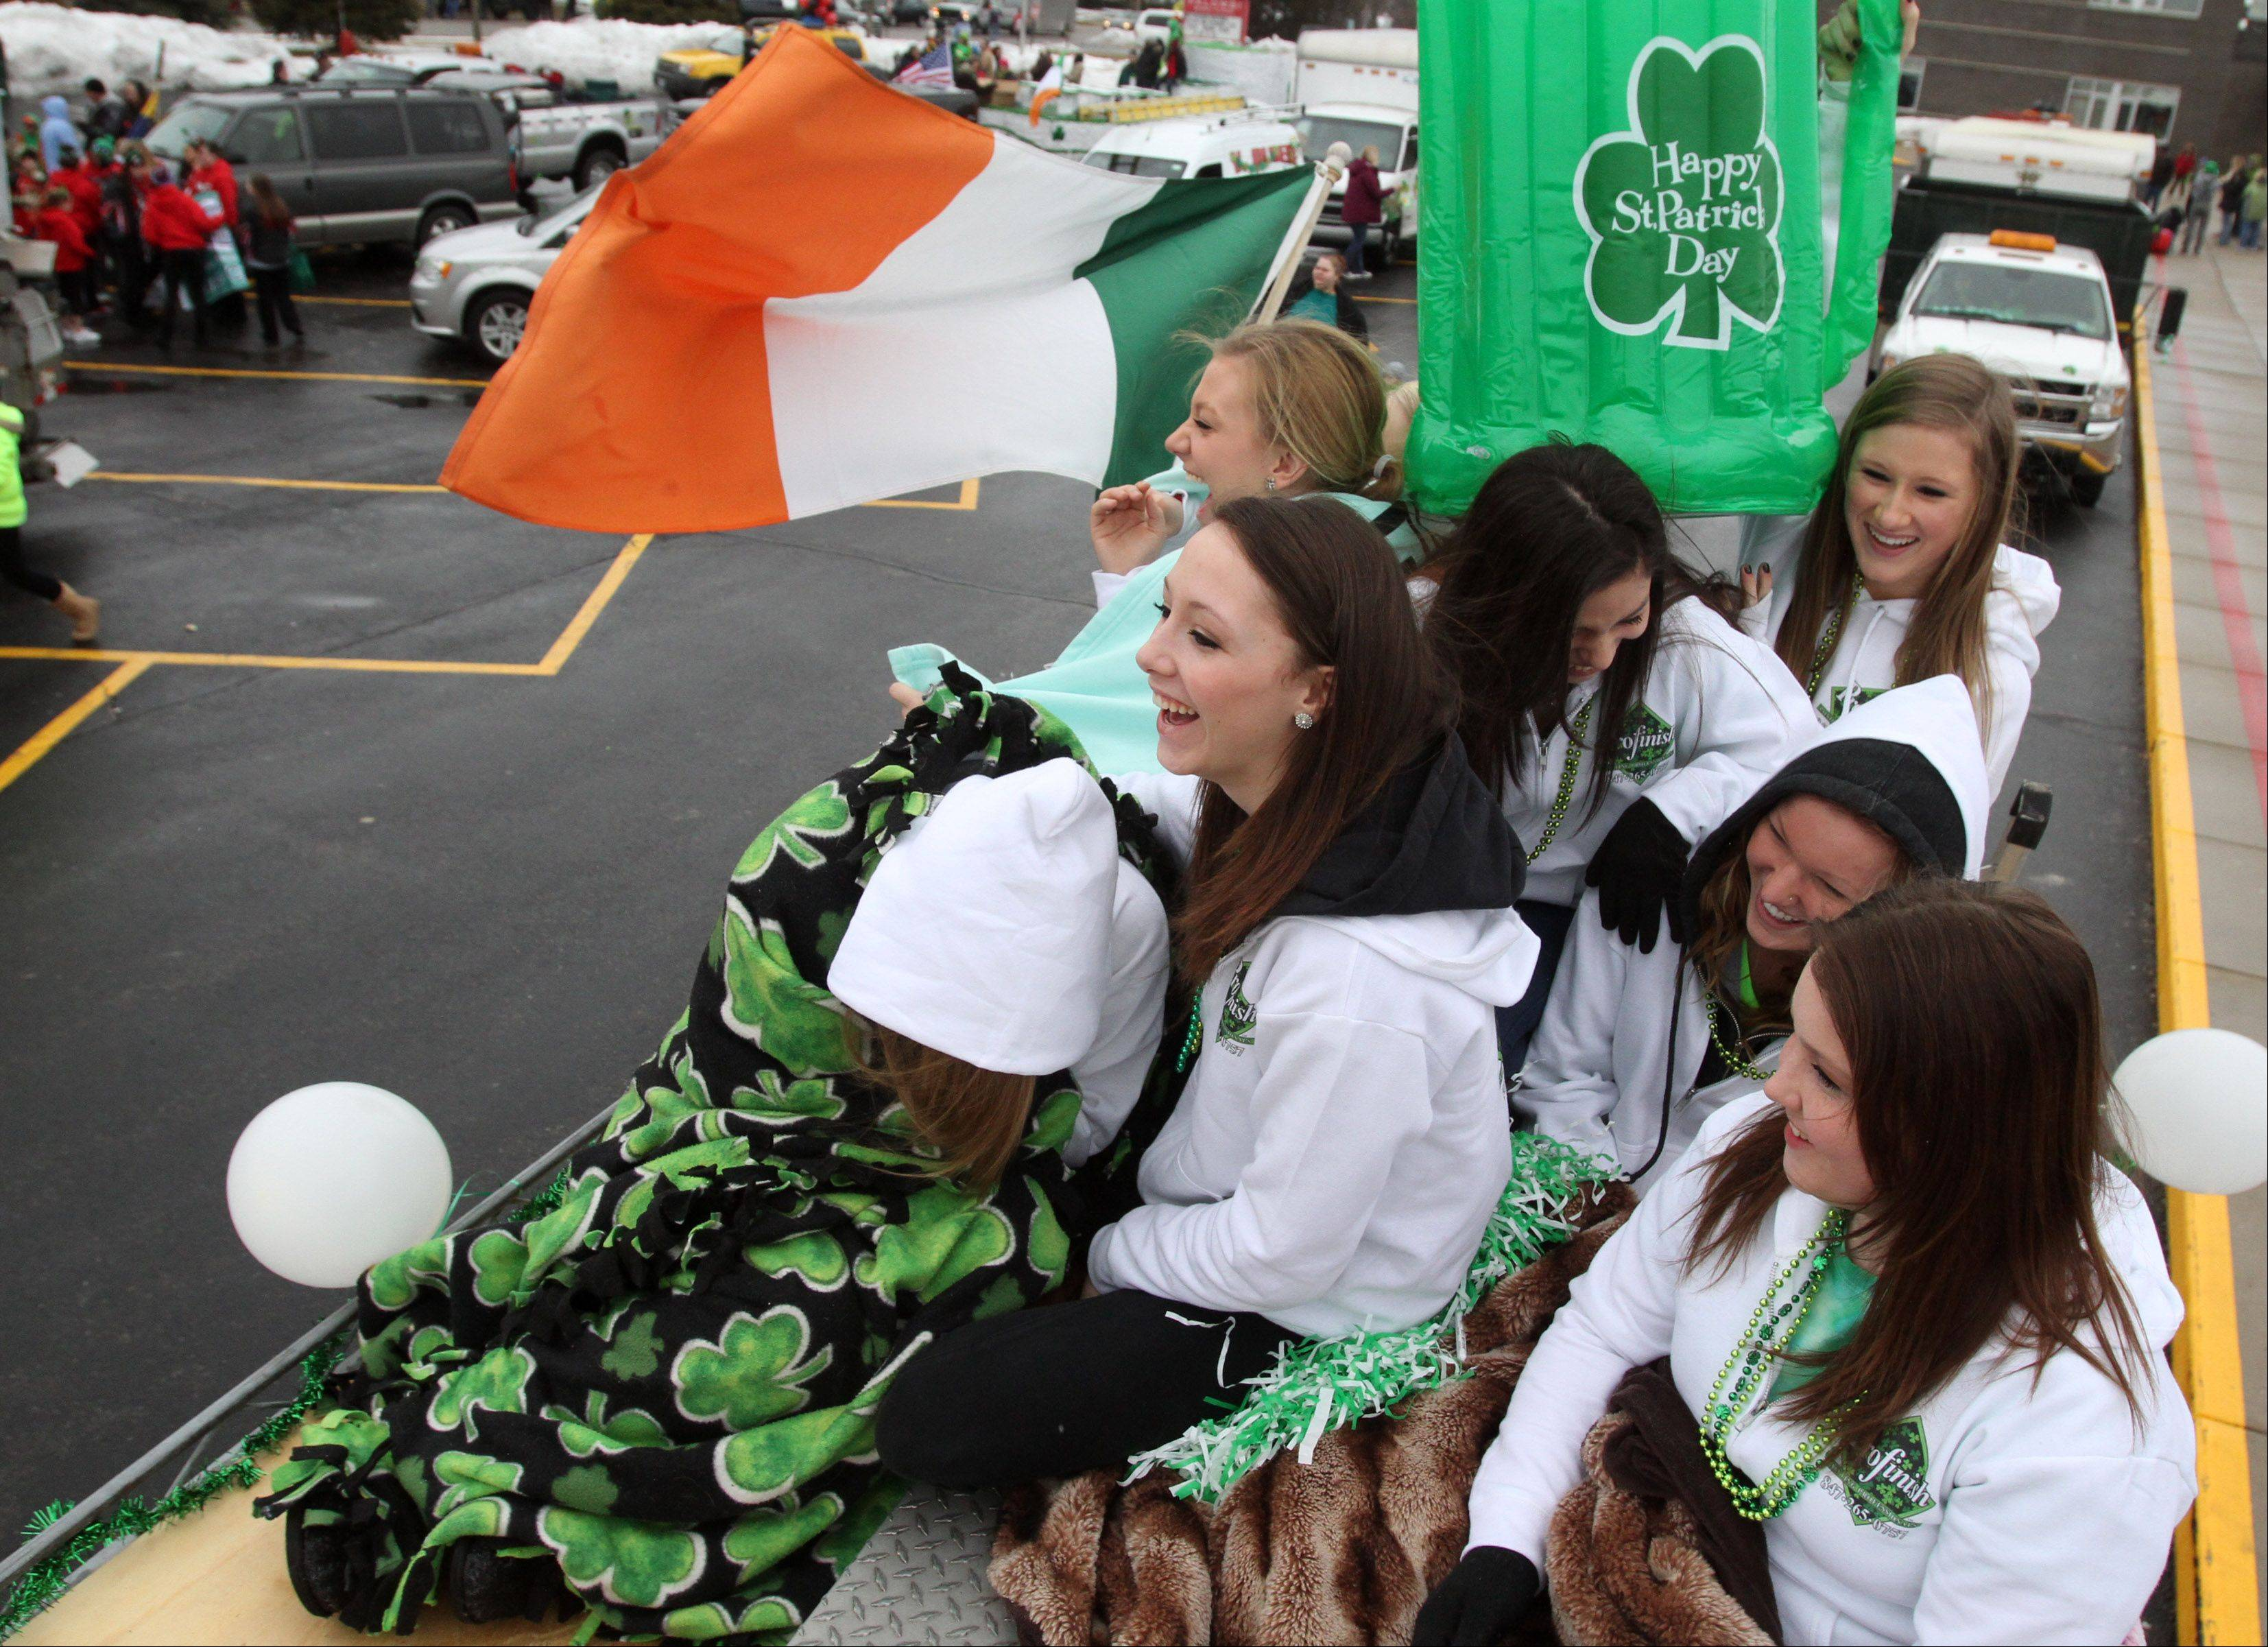 Lake Zurich High School students including Sara Cook, 14, and front row left to right, Ashlee Cook, 15, and Mackenzie Matthews, 14, all of Lake Villa, prepare to ride on the Profinish Painting Professionals of Lake Villa van Saturday in the Lake Villa St. Patrick's Day parade.